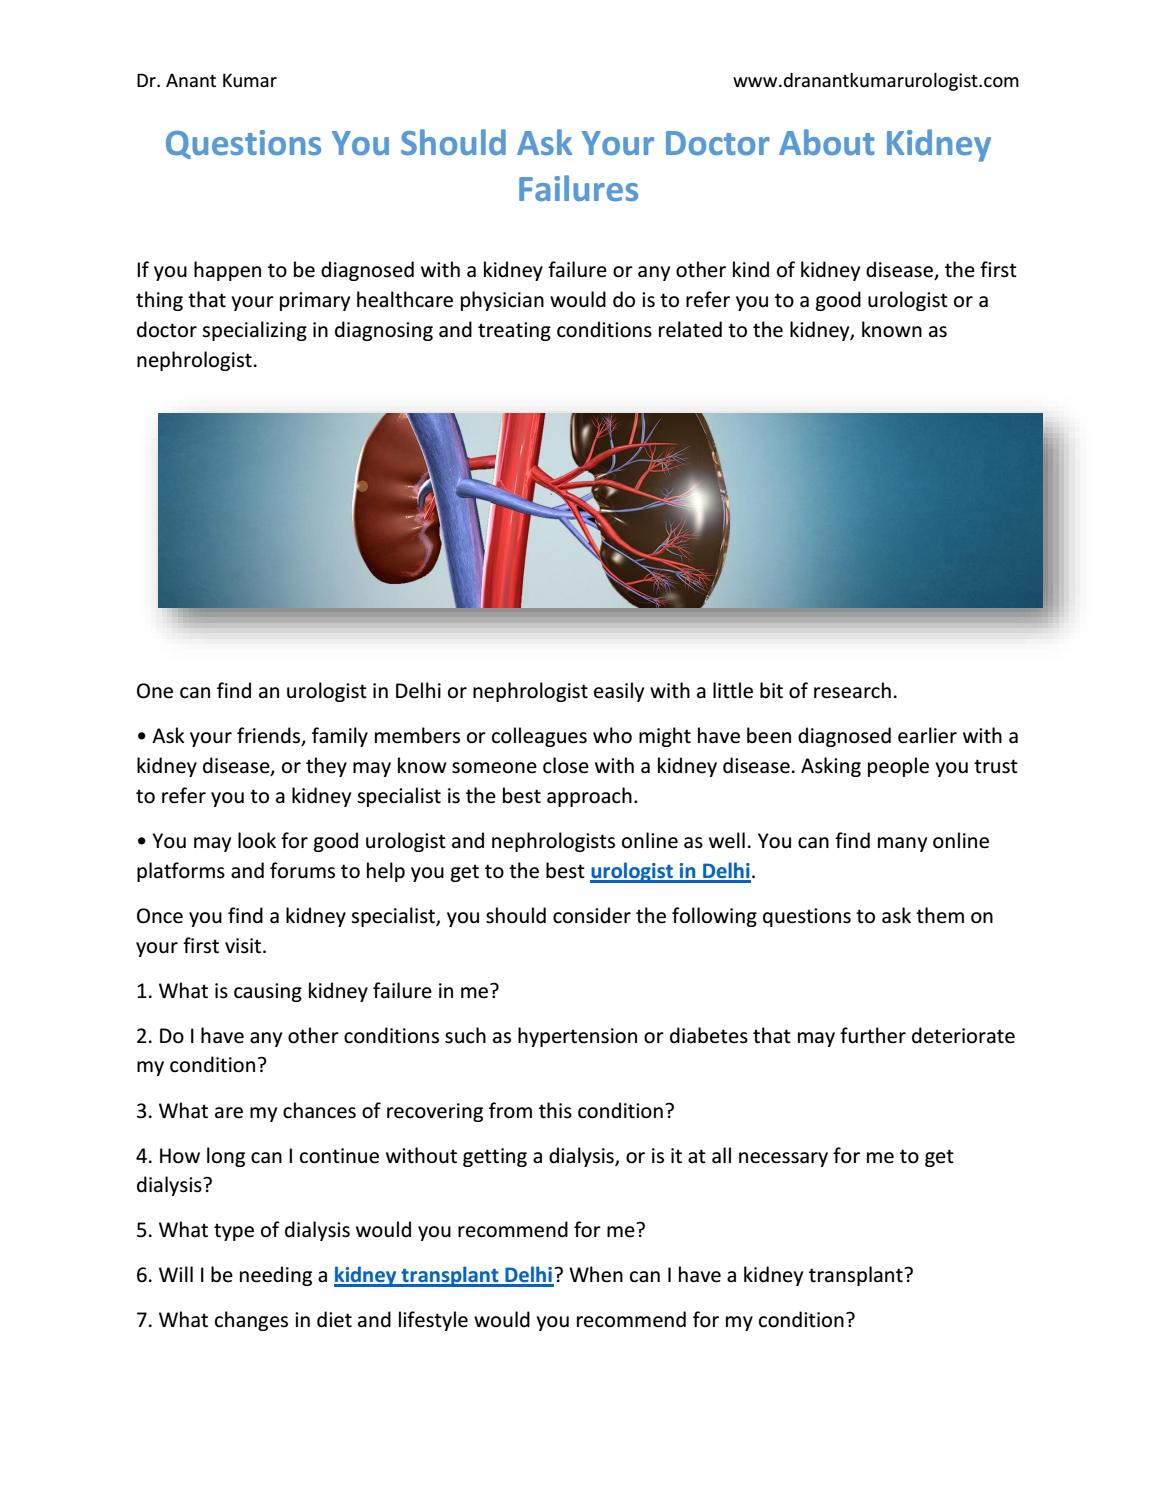 Questions You Should Ask Your Doctor About Kidney Failures